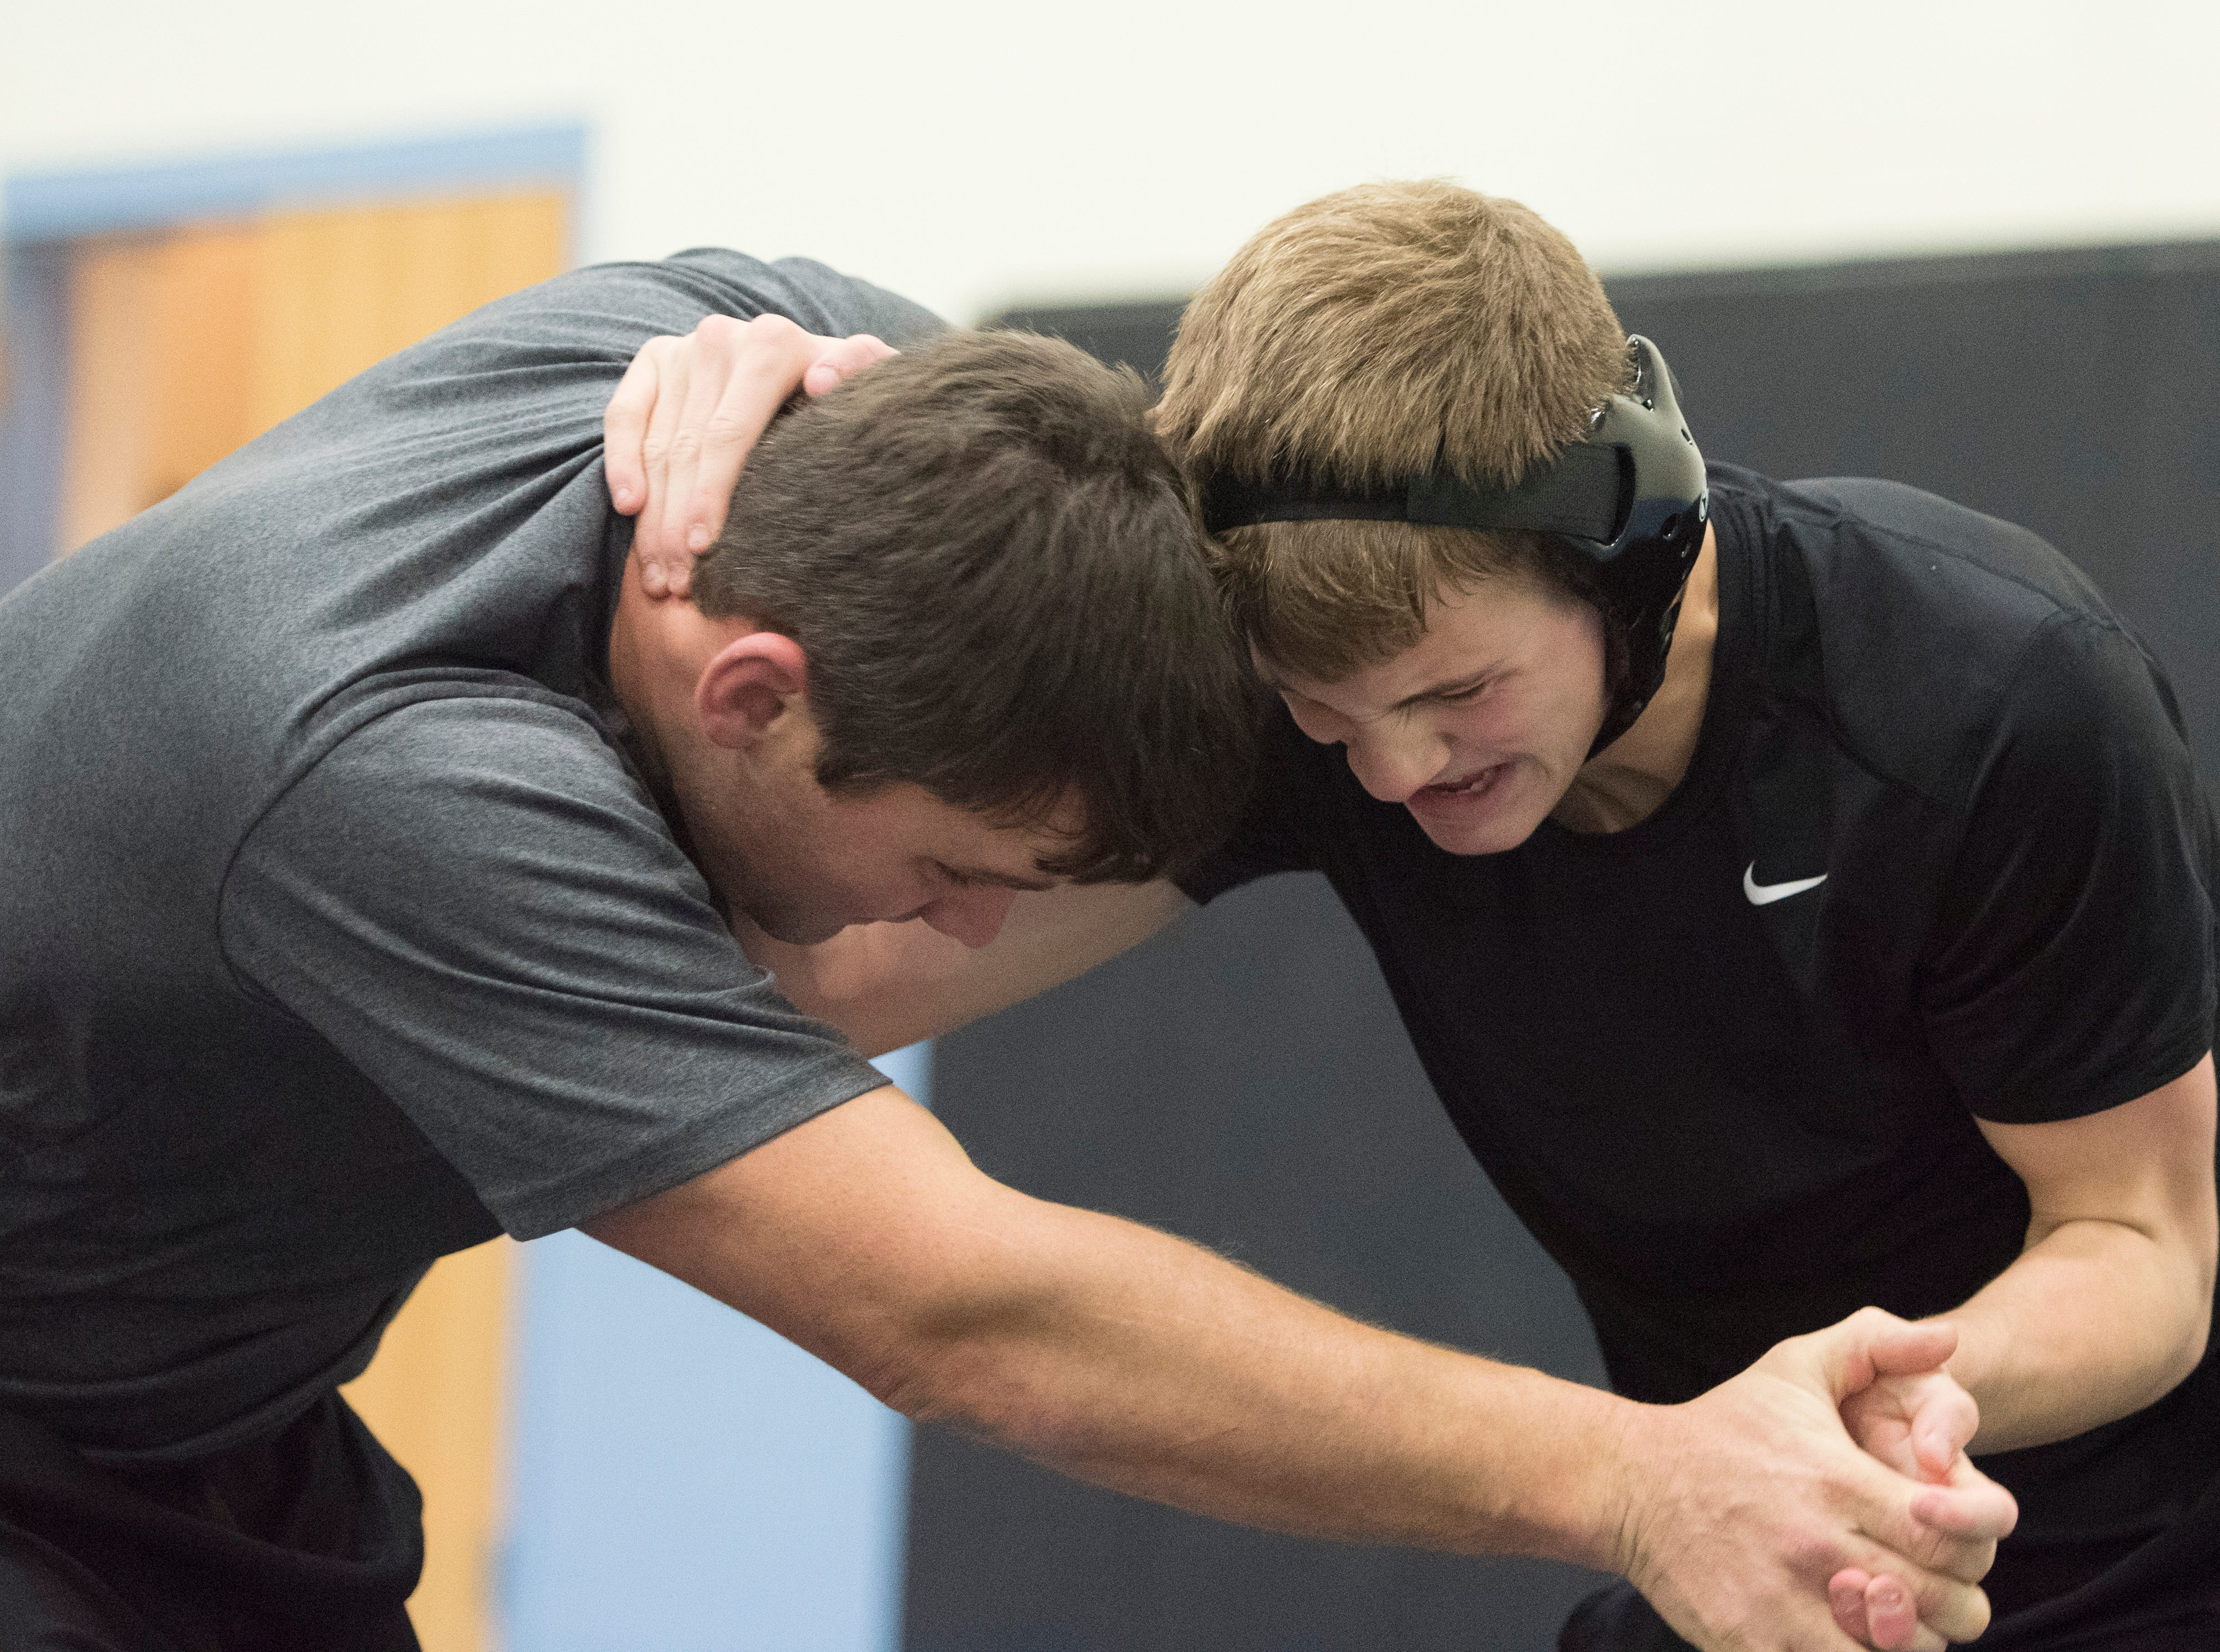 Wyatt Crabtree, right, wrestles with coach Scott Green during wrestling practice as wrestlers change partners to practice different wrestling moves Thursday in Waverly, Ohio.